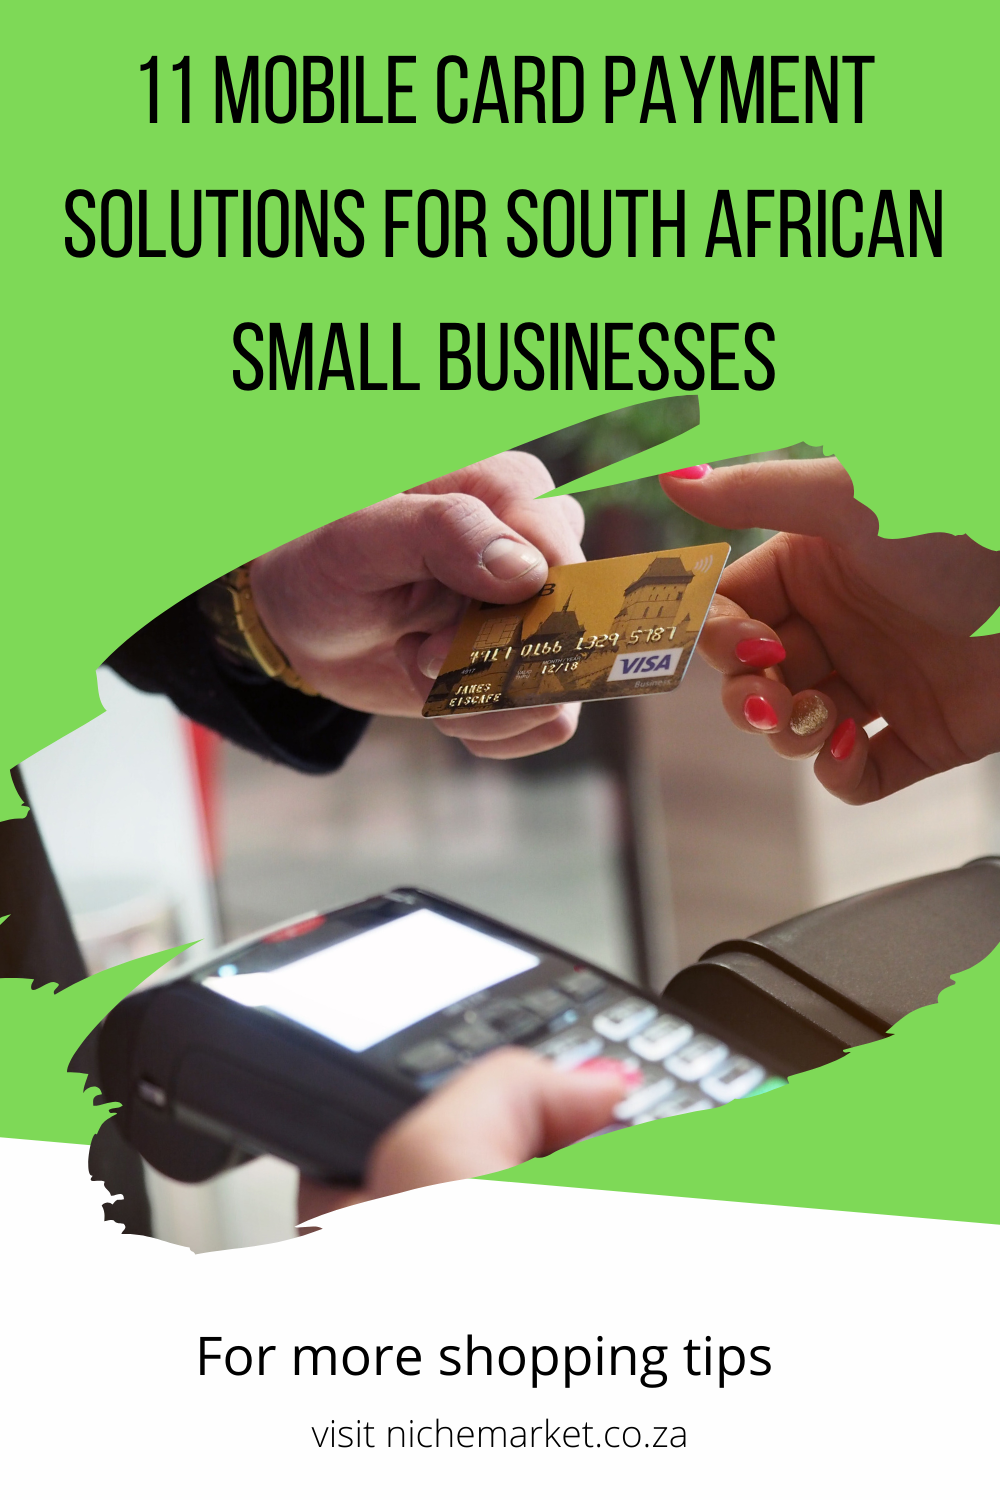 11 Mobile Card Payment Solutions For Small Businesses Banking App Shopping Hacks Small Business